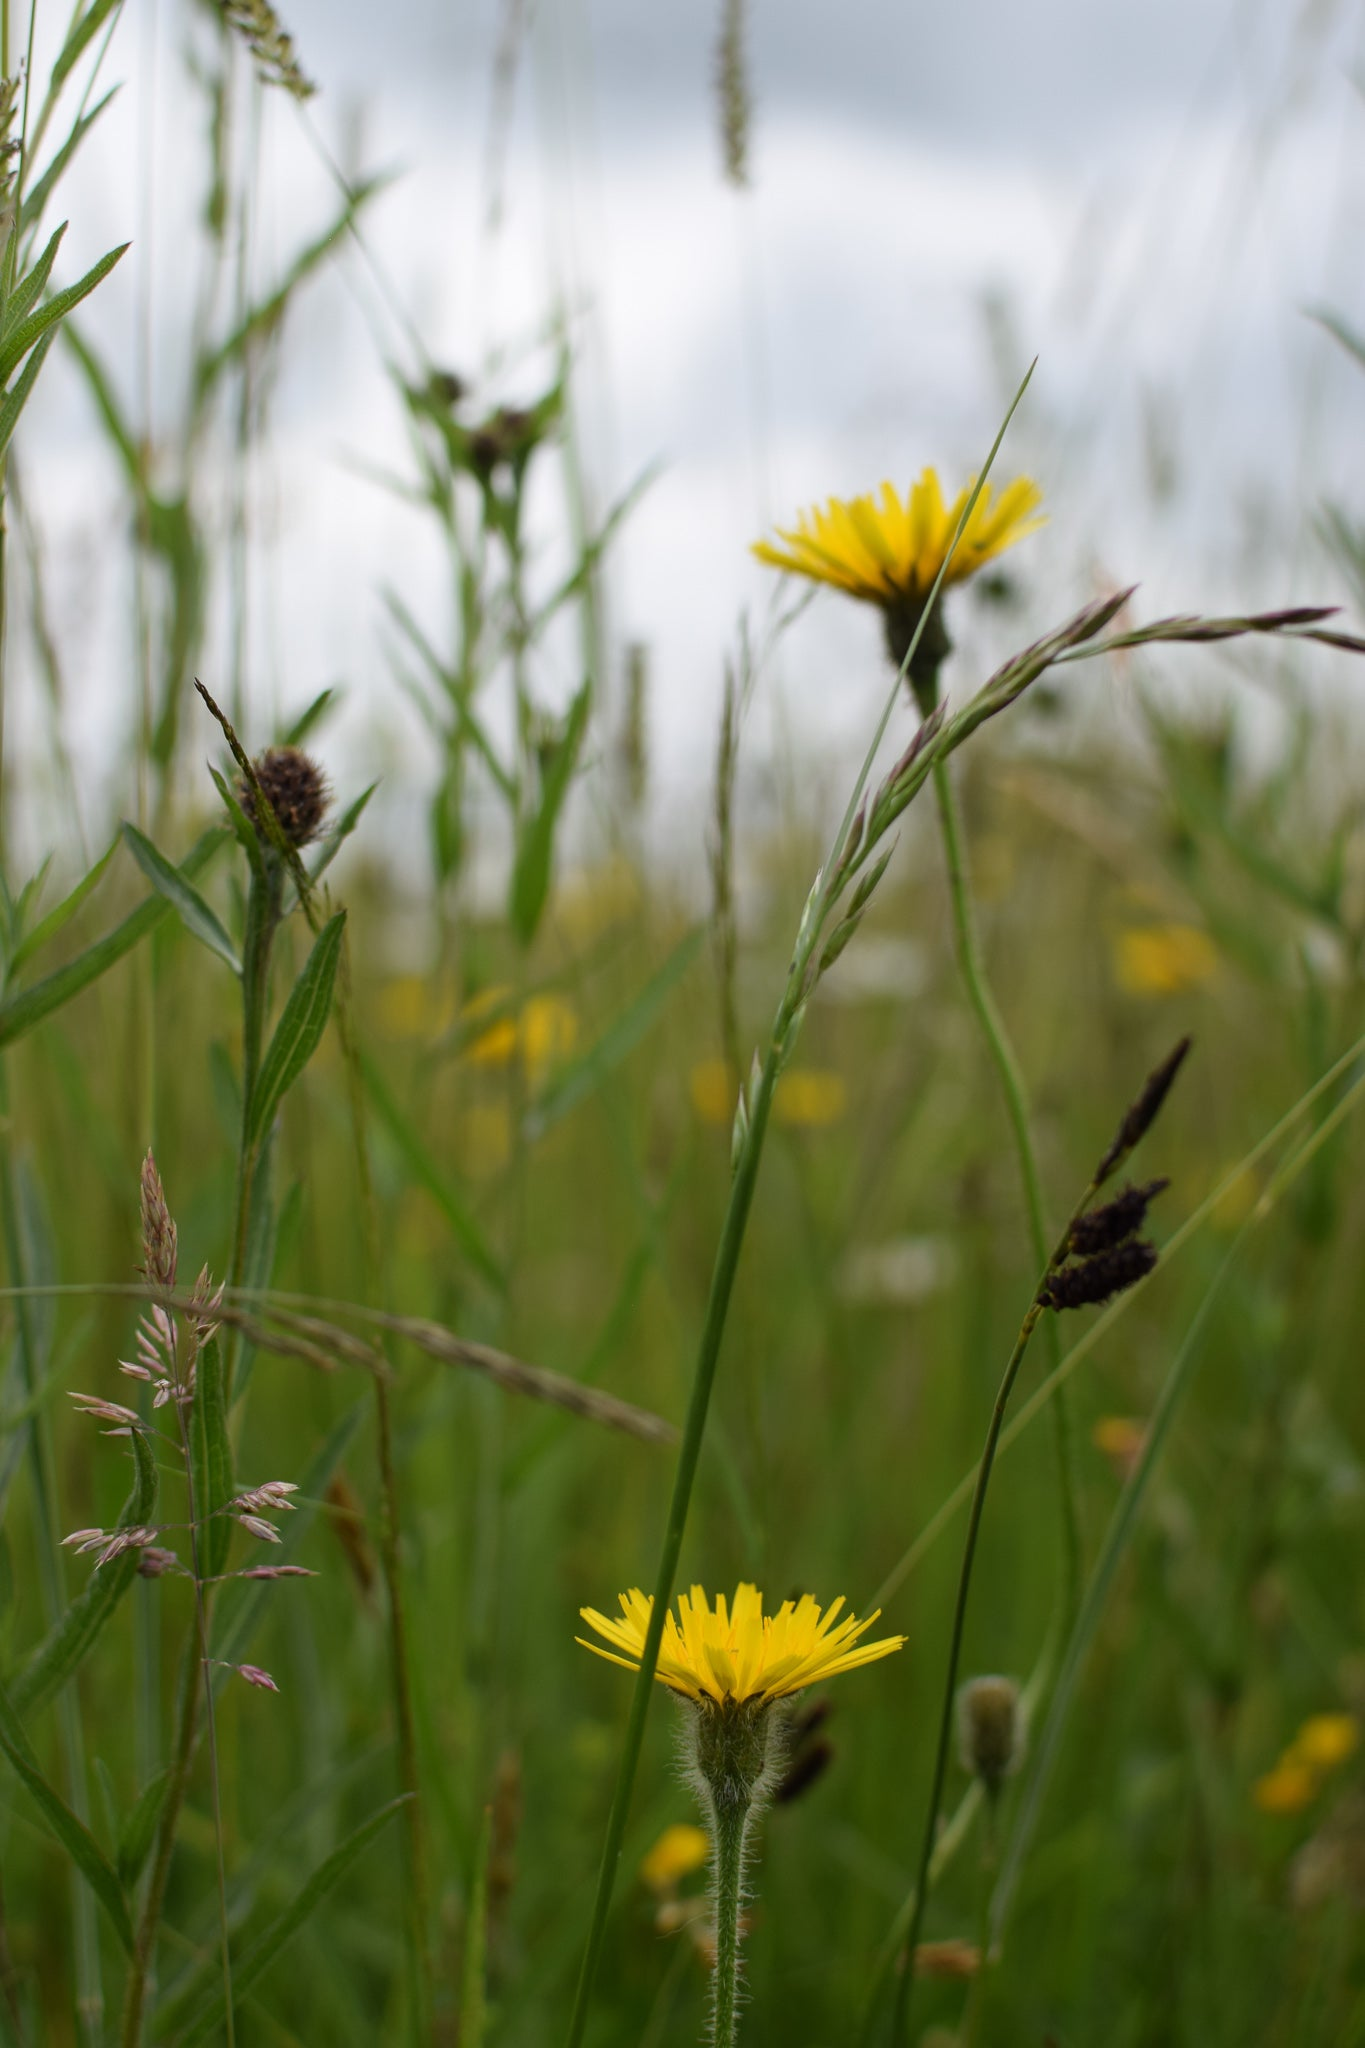 Knapweed in the long grass at Eades Meadow, Worcestershiree